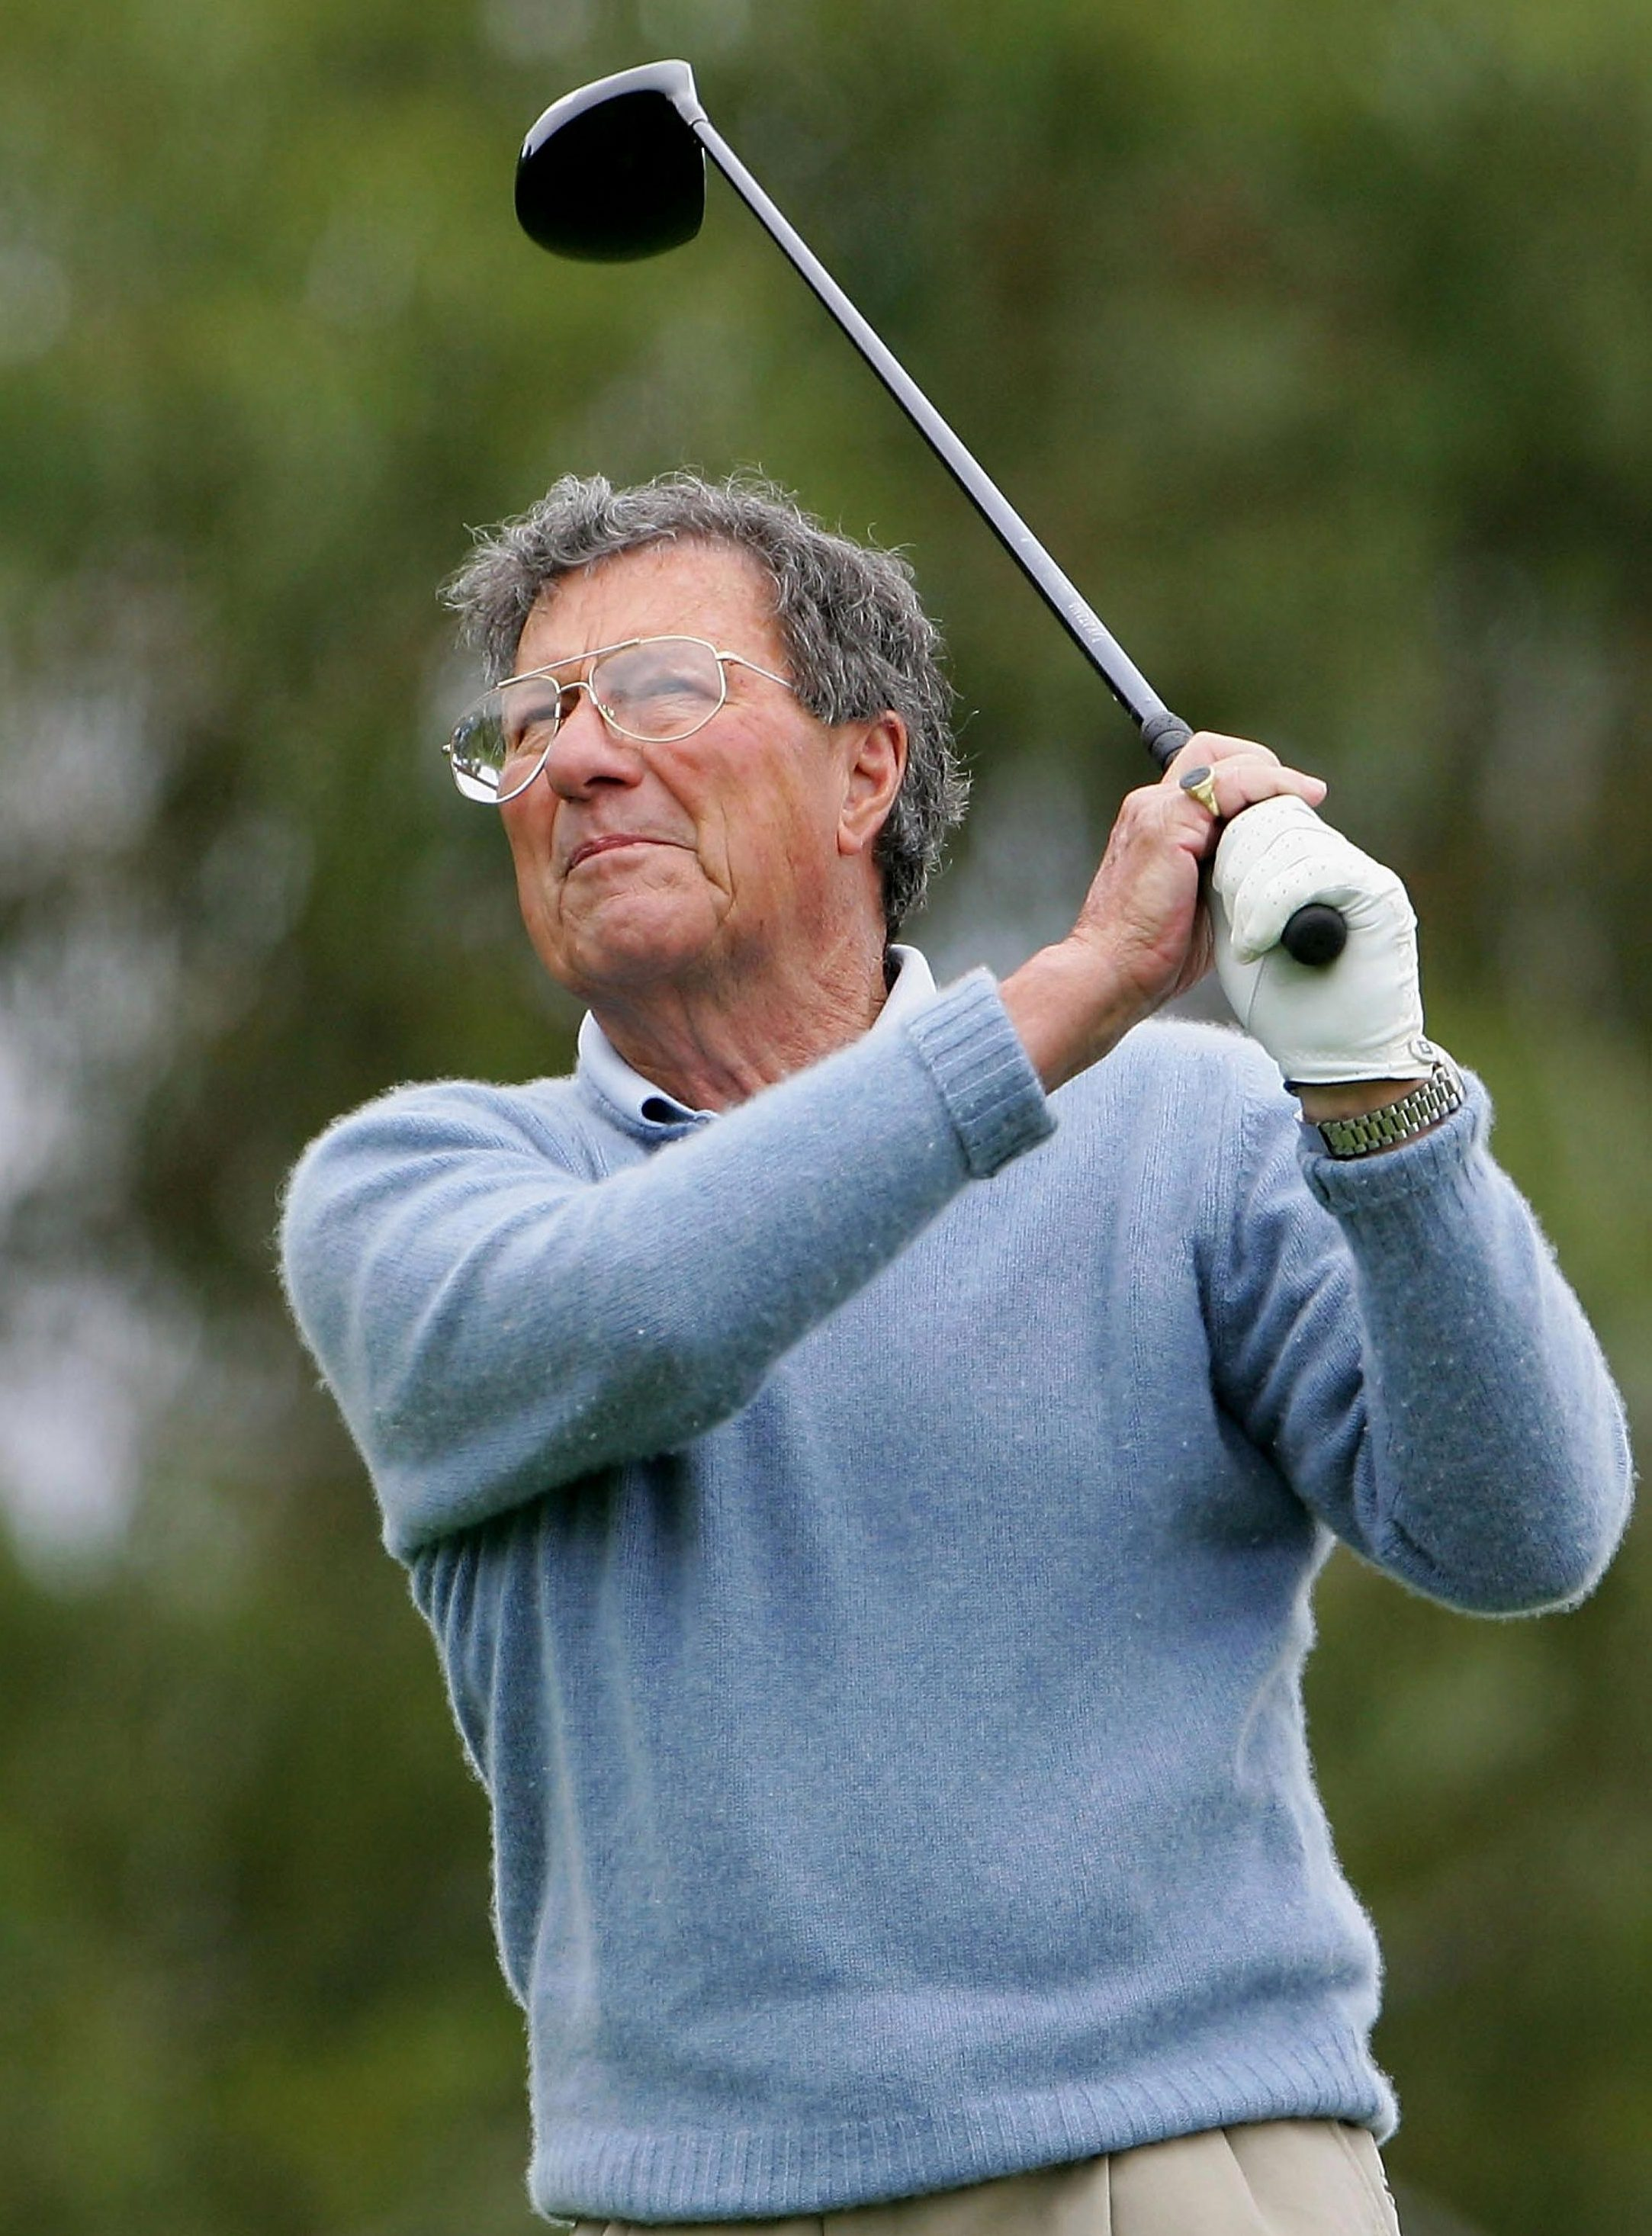 Thomson had suffered from Parkinson's disease for more than four years, his family told PGA Australia